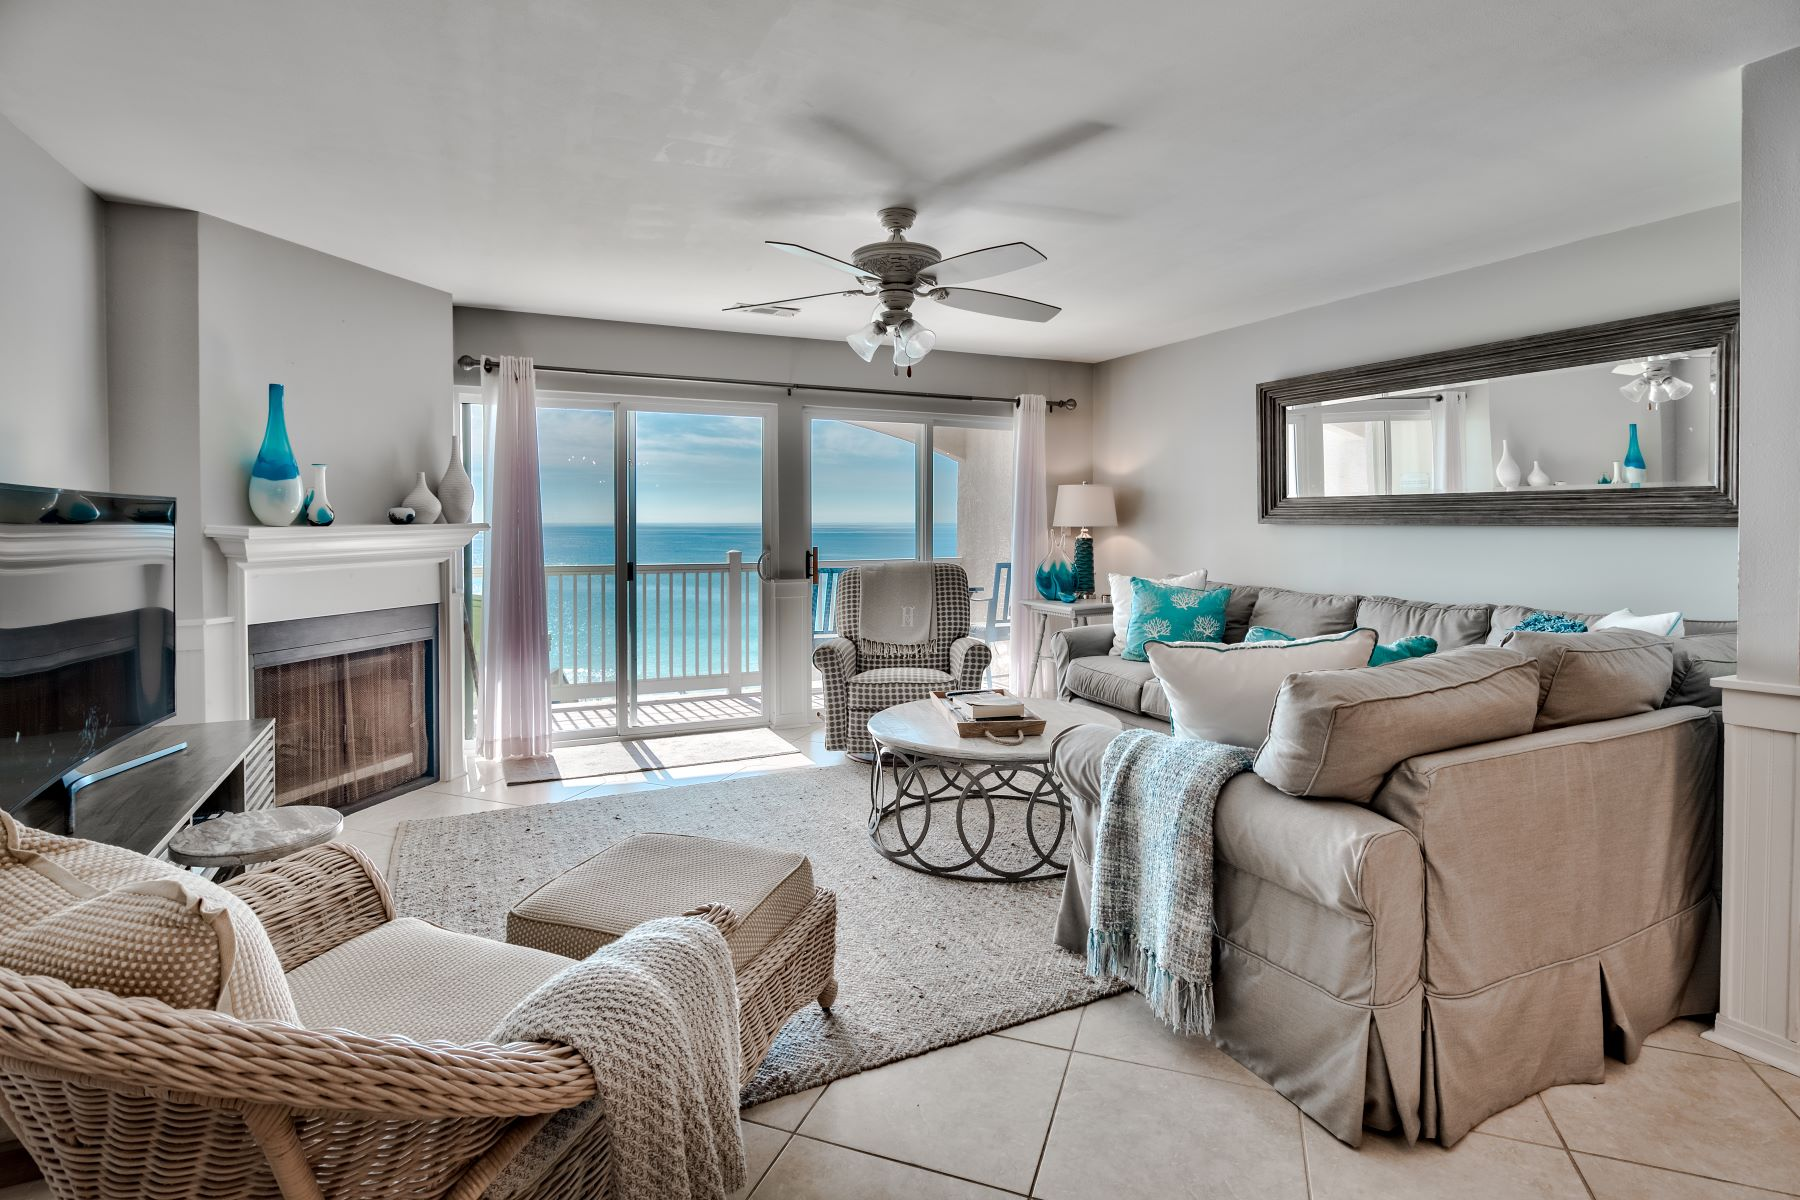 Condominiums for Sale at Beautiful and Spacious Beachfront Condo in Seacrest with Pool 8394 East County Highway 30A 5B Inlet Beach, Florida 32461 United States